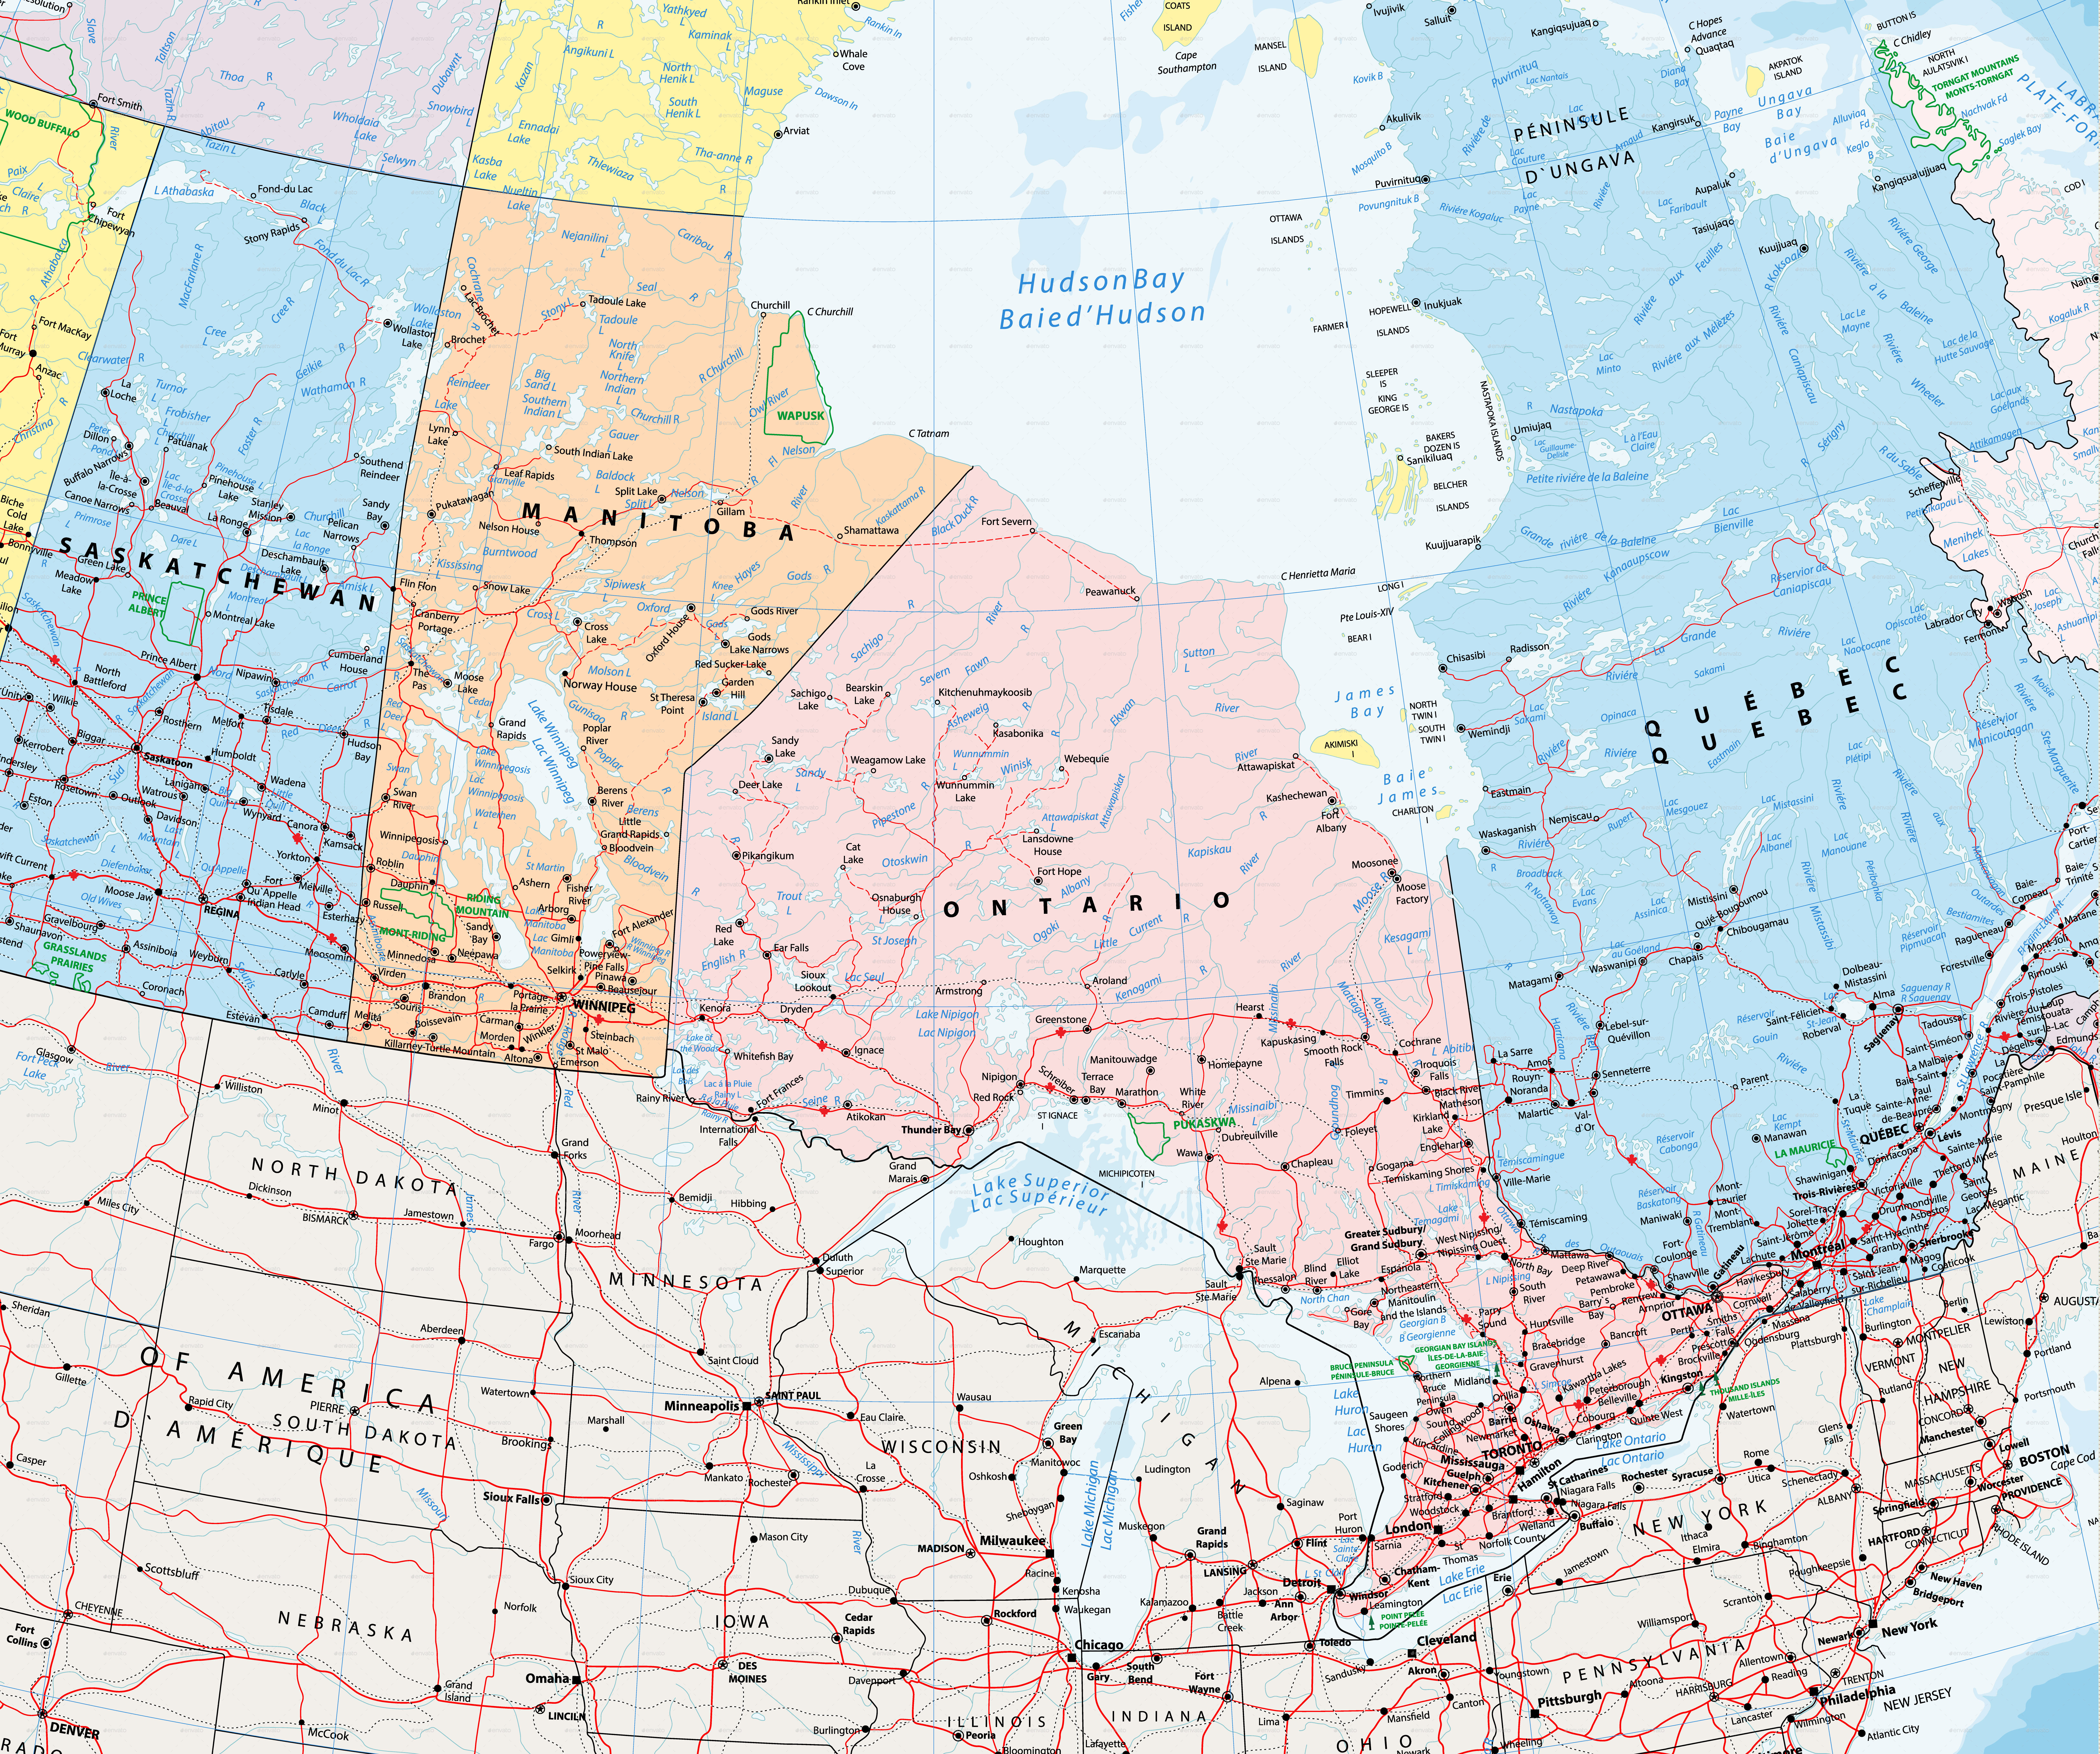 Giant Detailed Political Map of Canada with Cities and Towns by